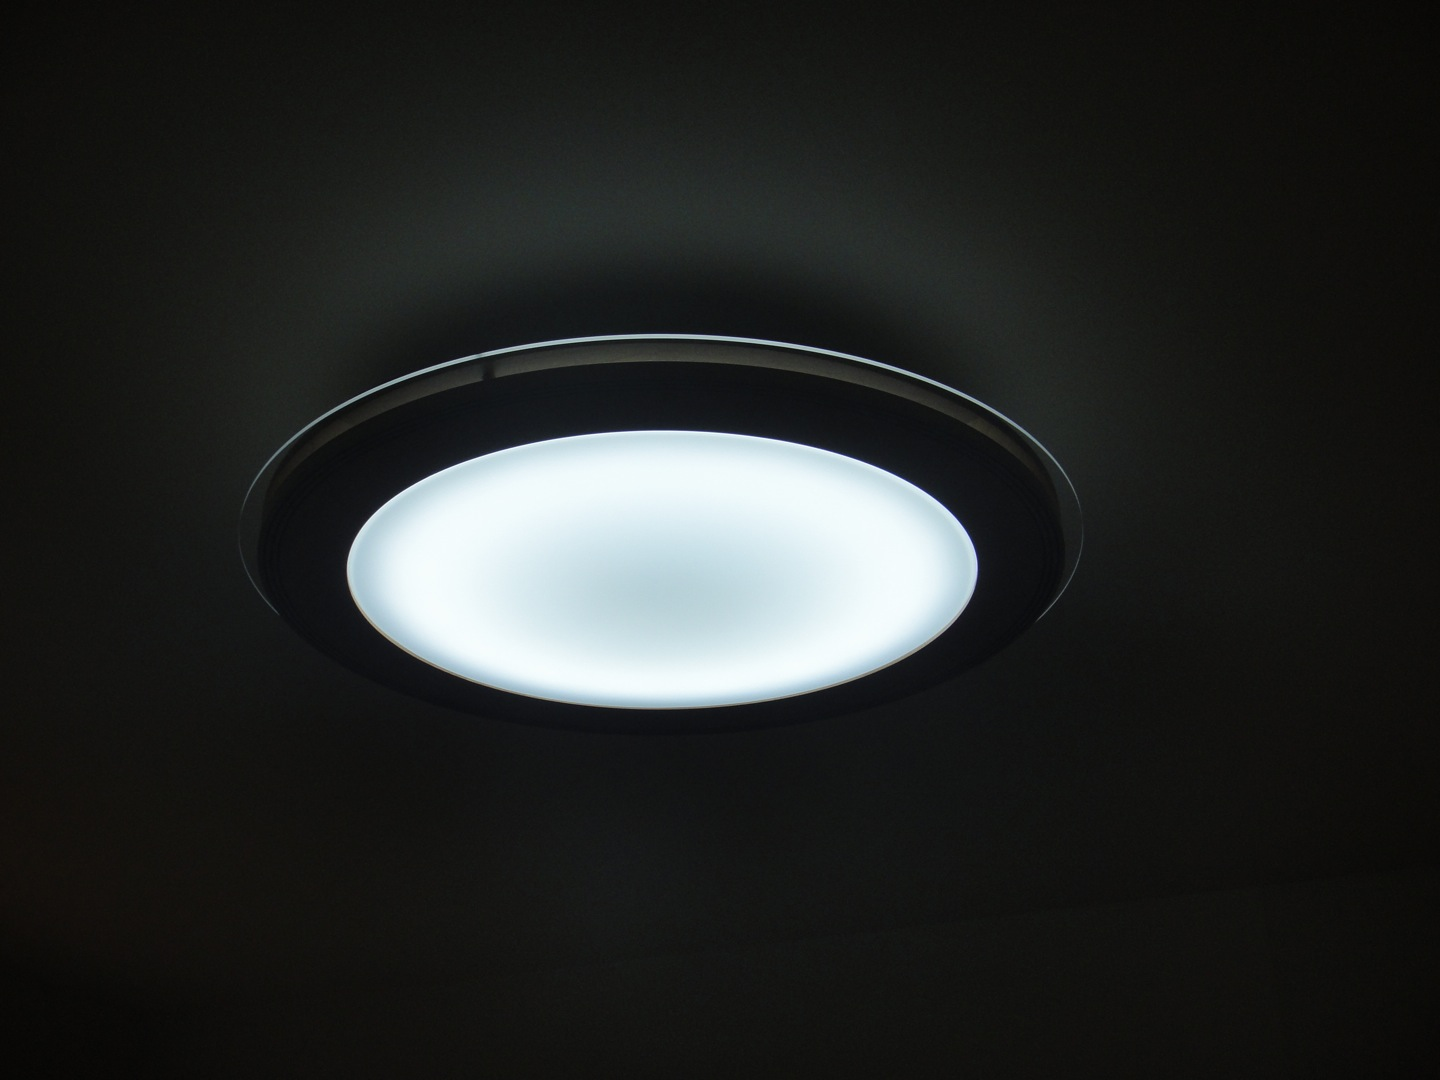 10 facts about Ceiling light speakers